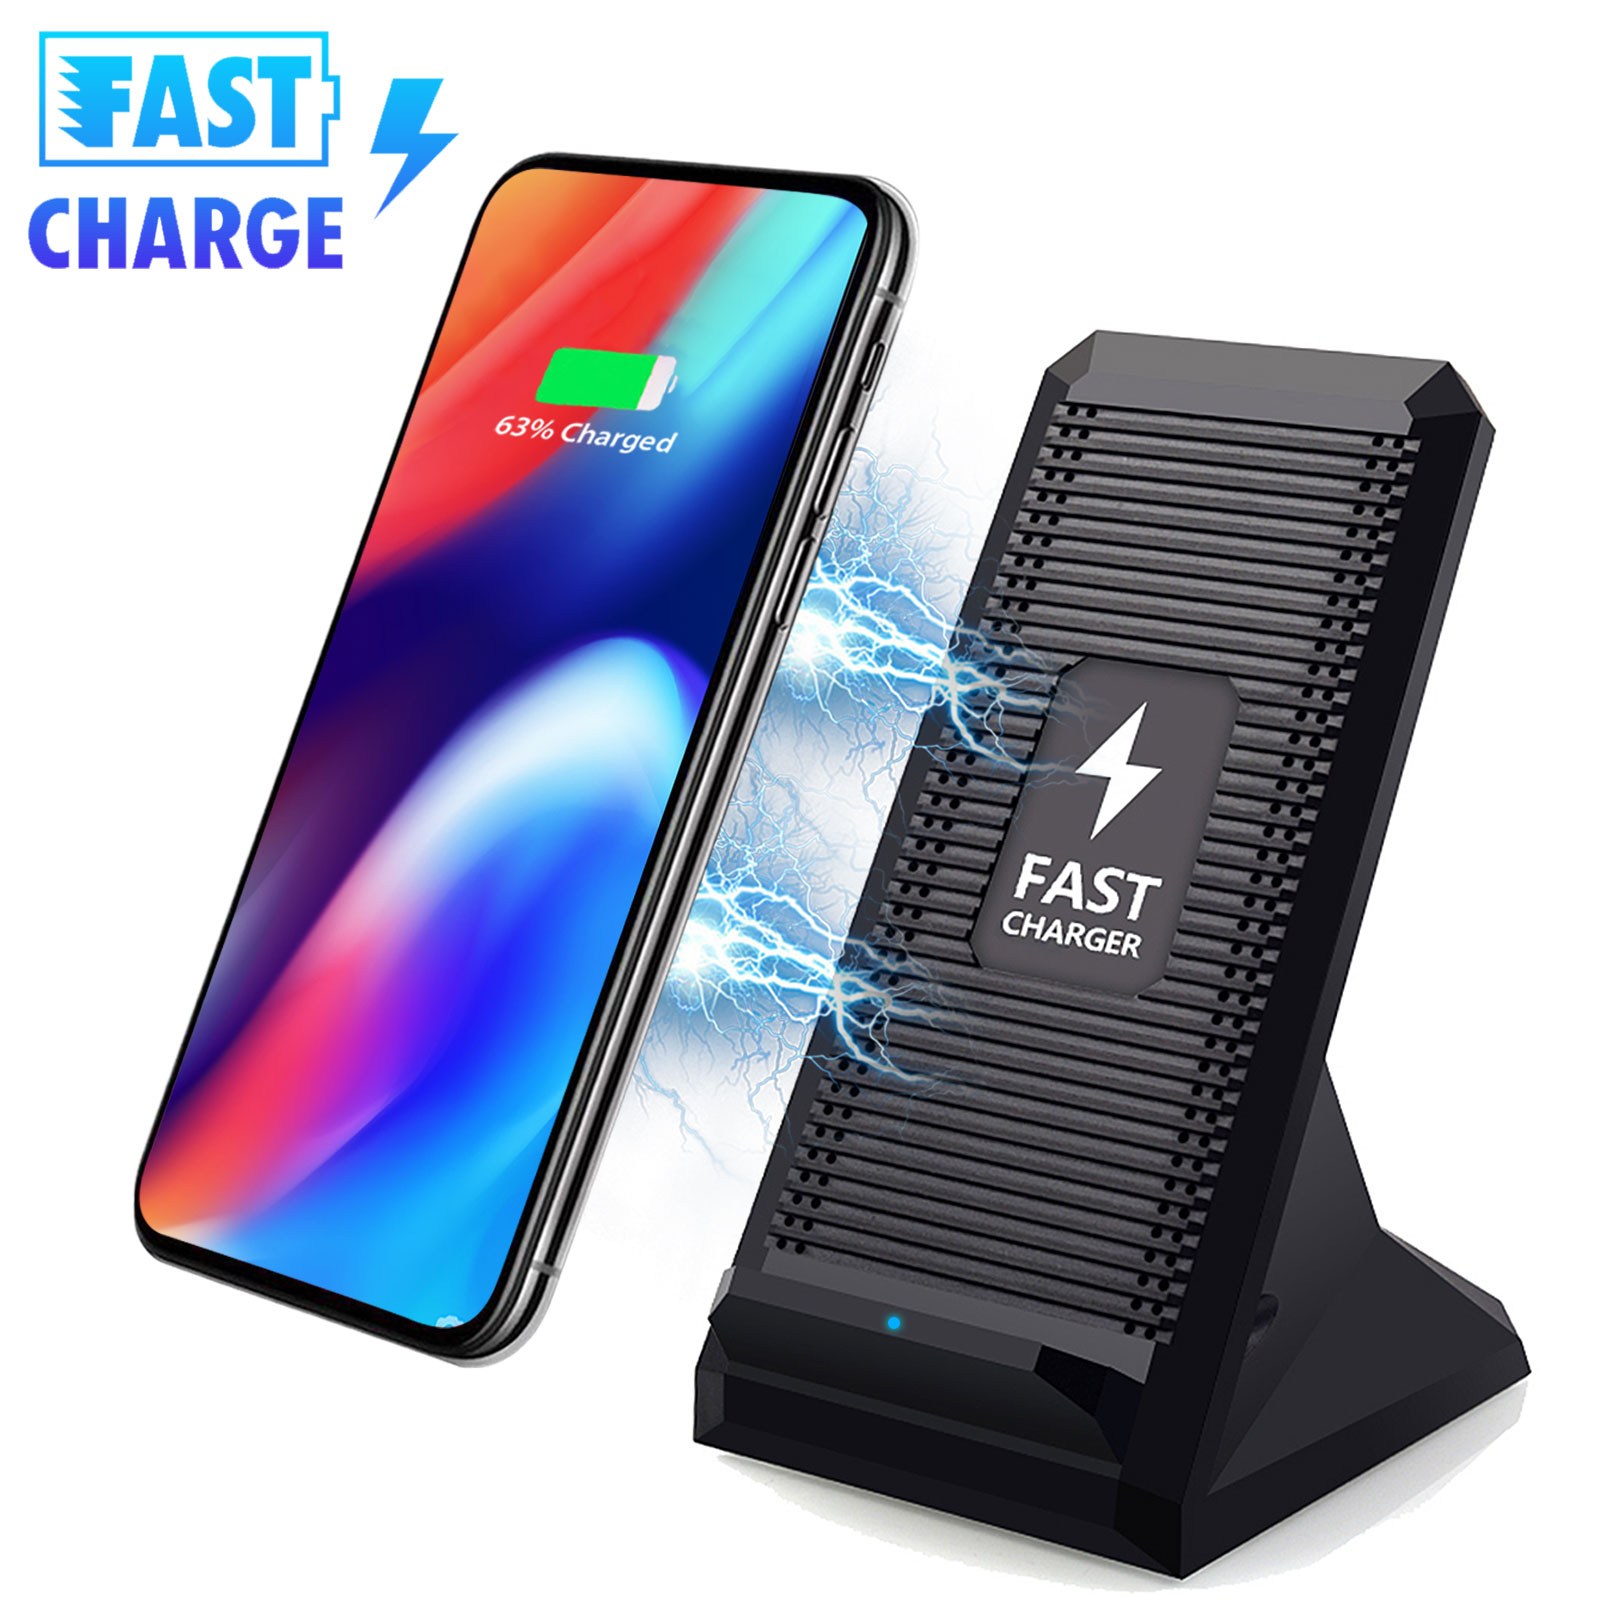 TSV 10W Fast Wireless Charger Stand Dock W/ Cooling Fan For Samsung Galaxy S9 Note 9